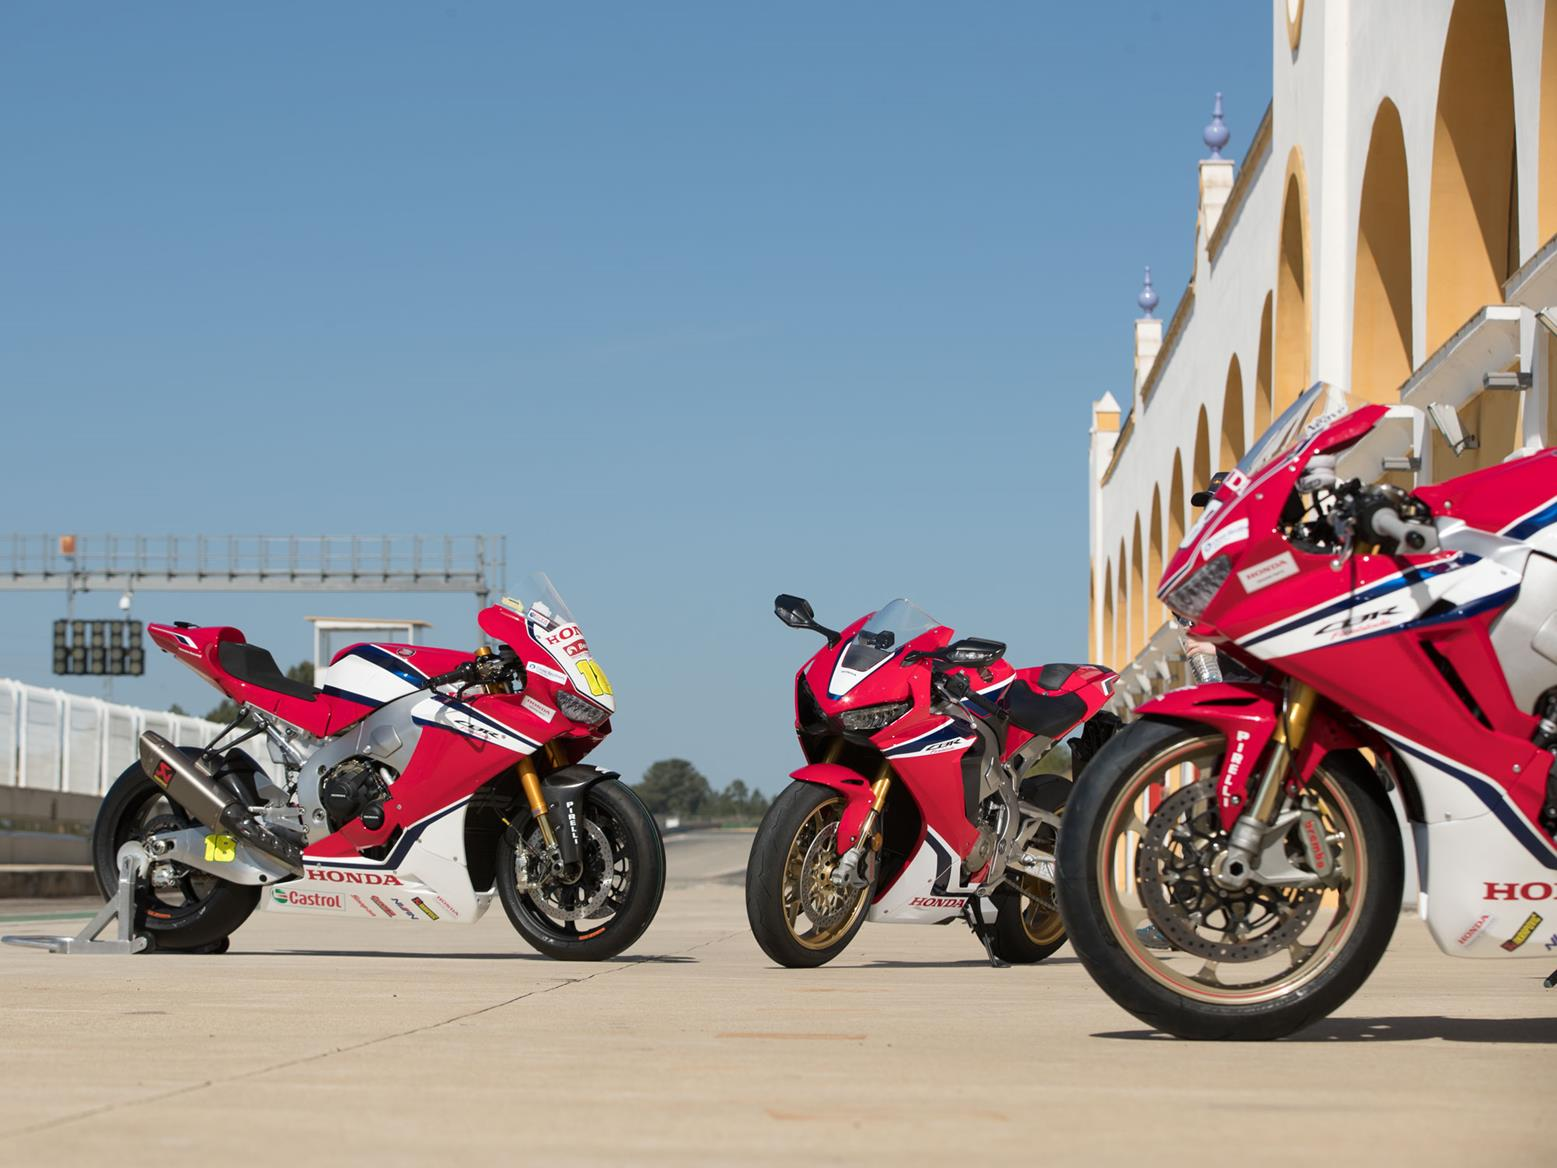 Three fast Honda Fireblades, one race circuit and a handy rider. There are worse days out